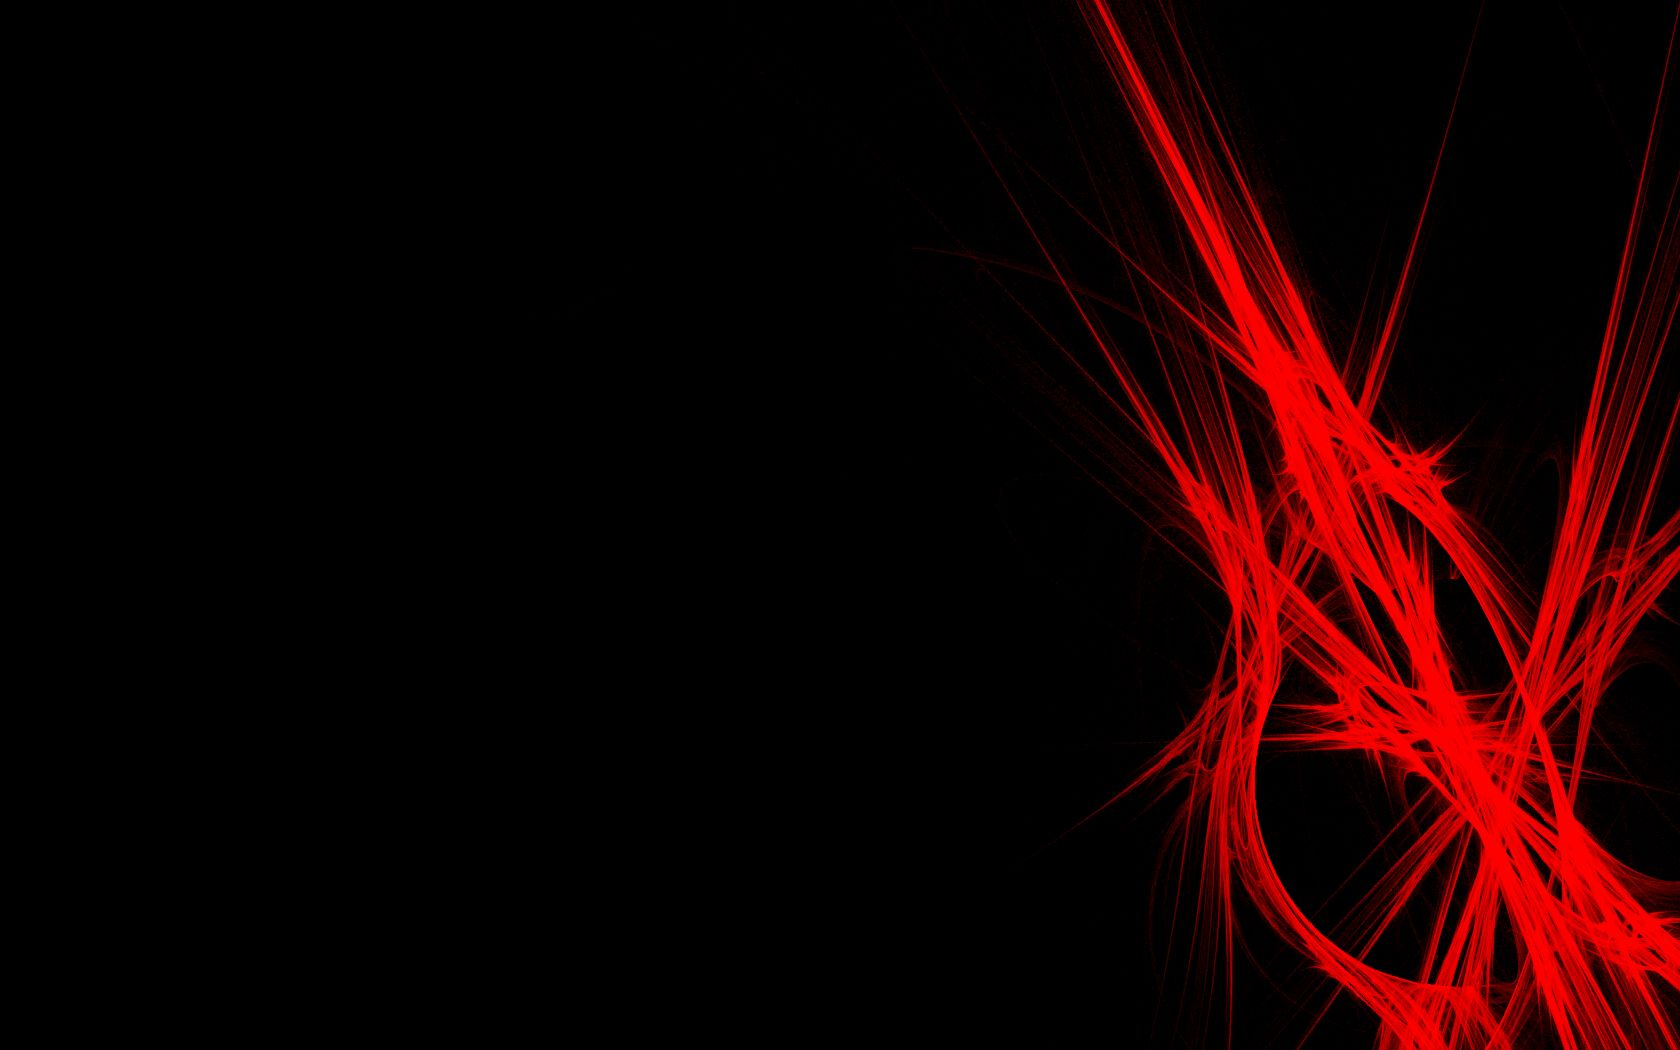 Abstract Wallpaper Black And Red Wide With 1680x1050 Wallpapers 73